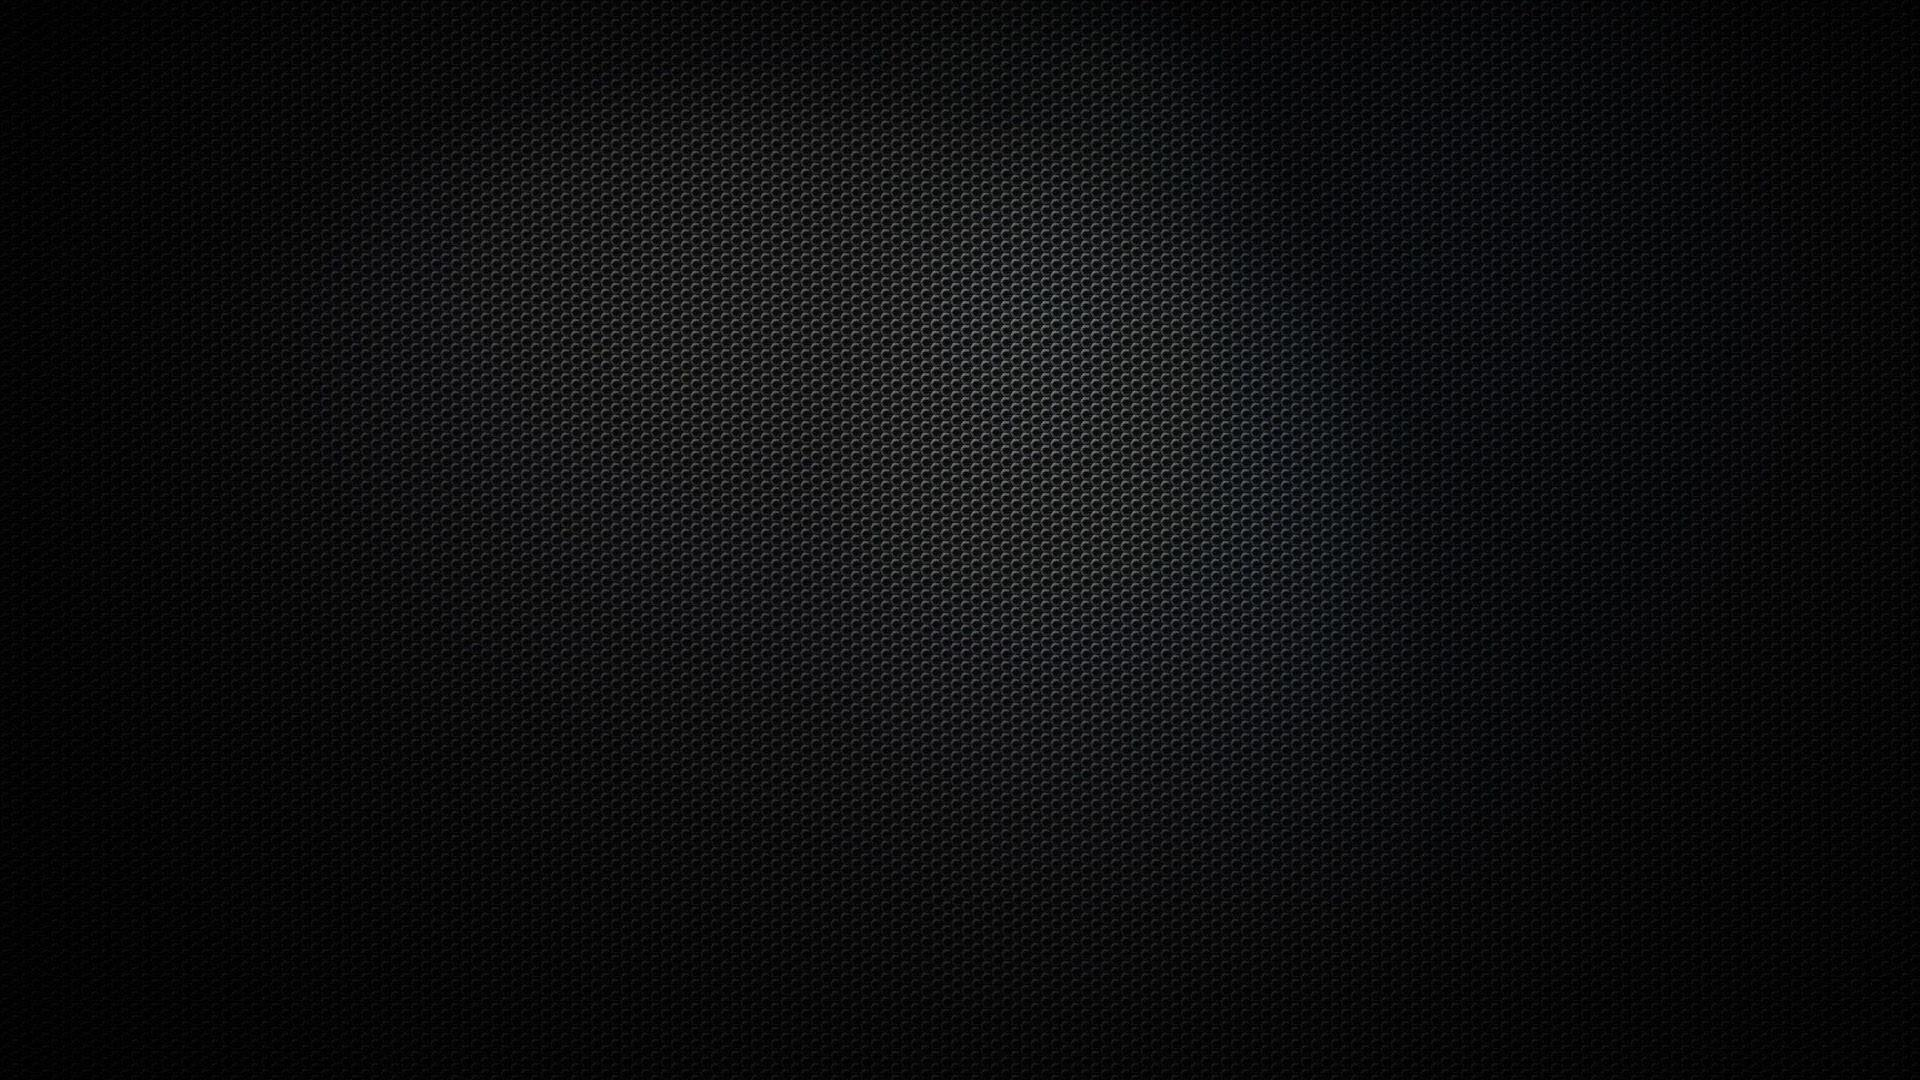 Art Abstract Black Wallpapers Background 1920x1080